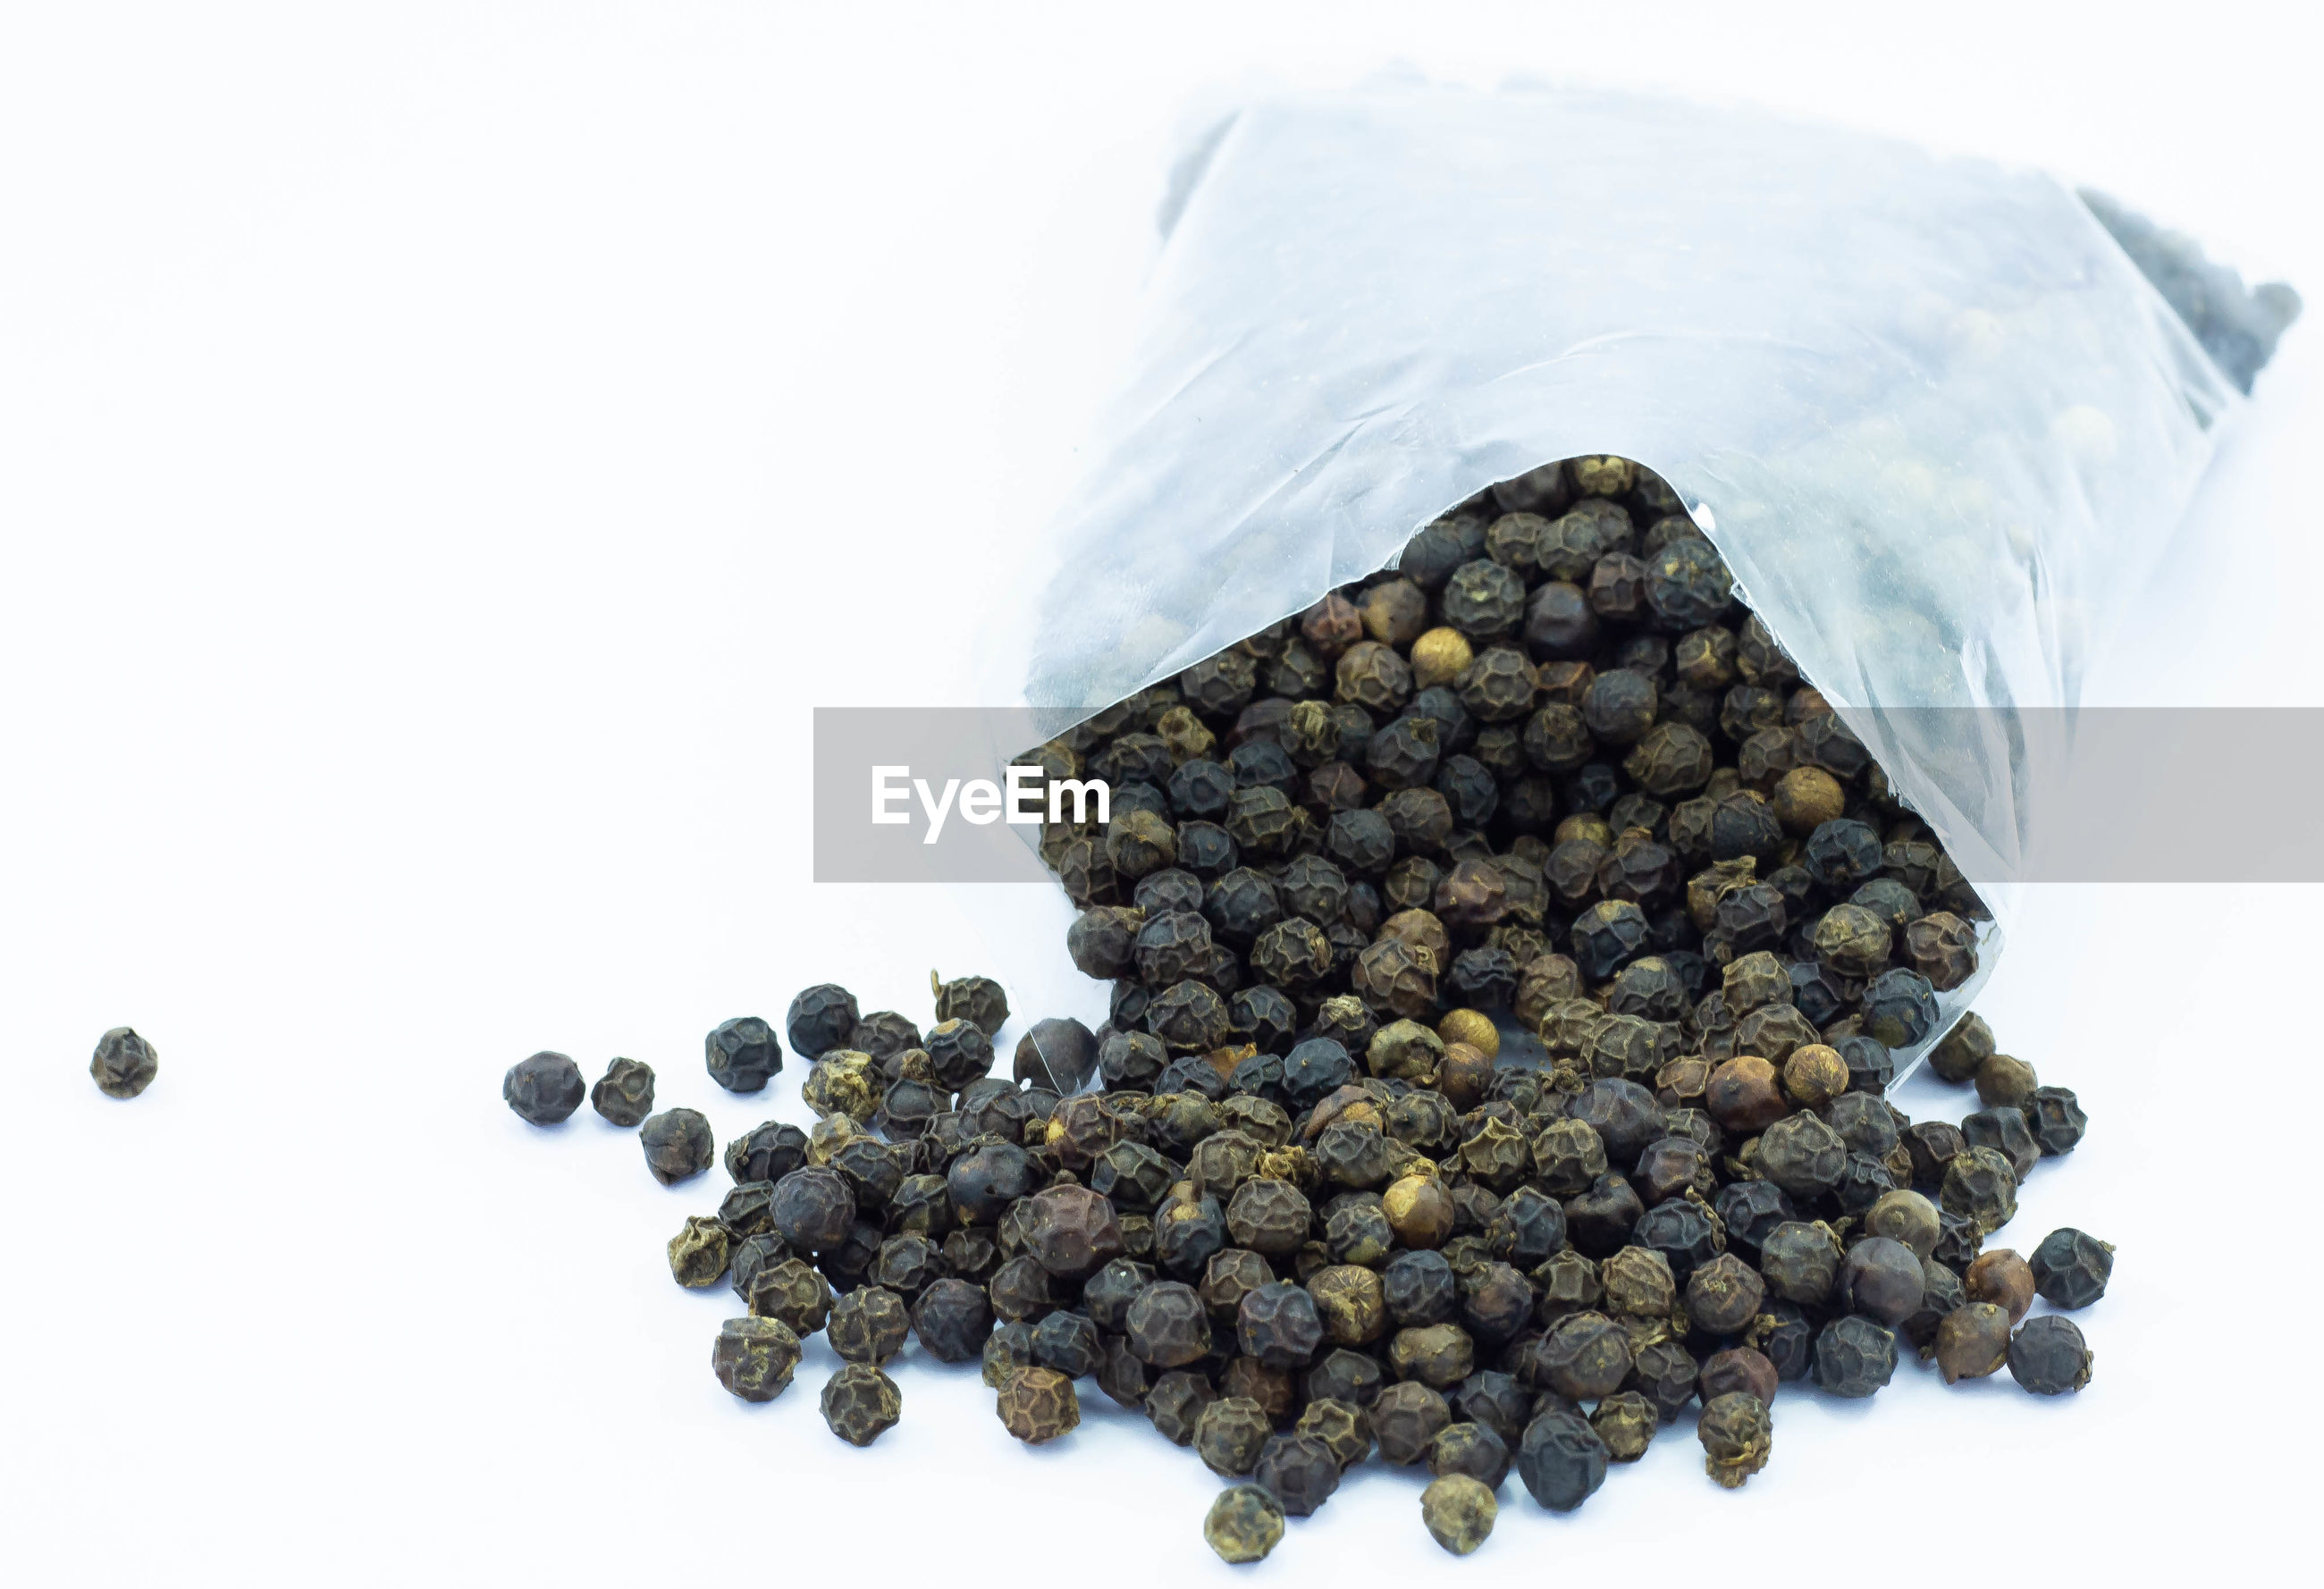 High angle view of pepper seeds on a white background